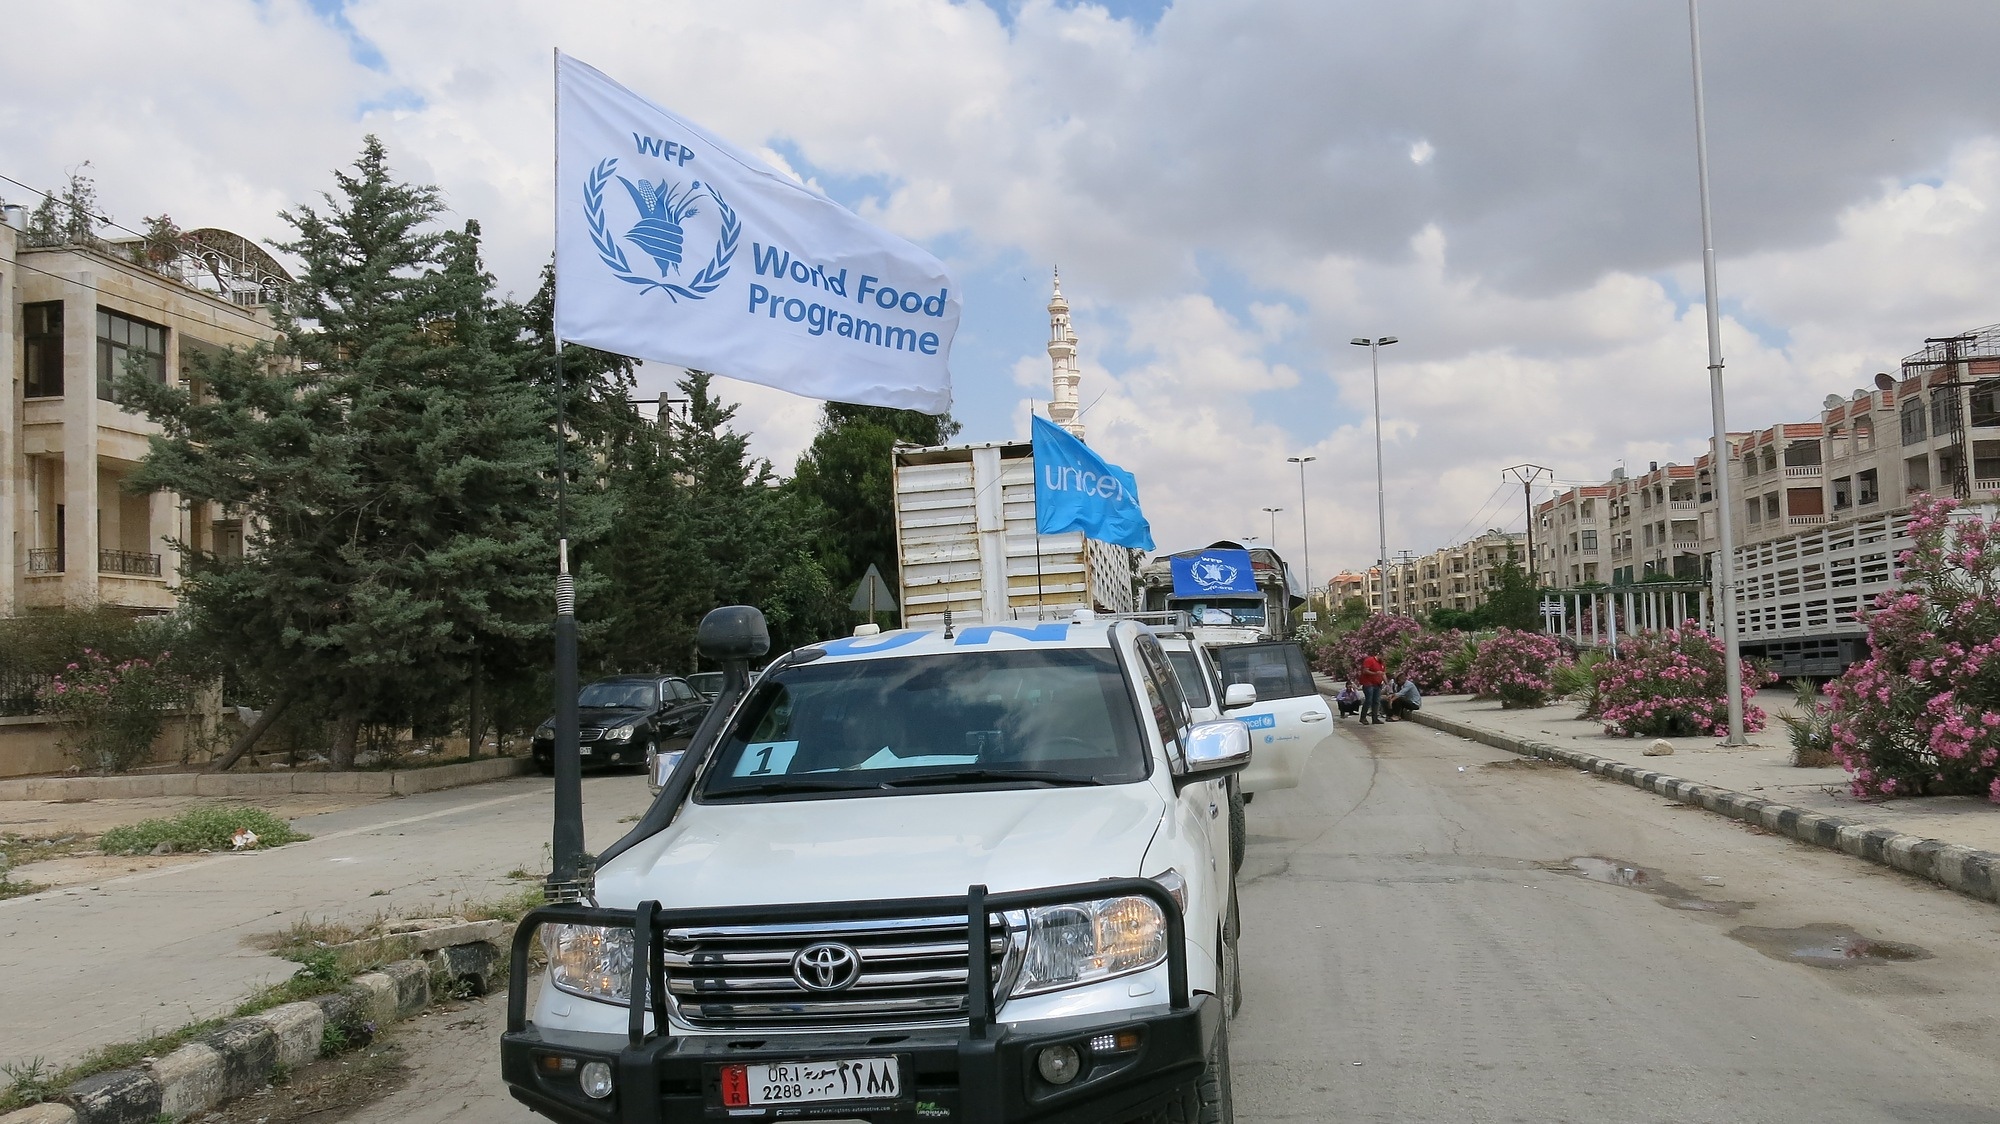 A convoy of trucks with WFP and UNICEF flags